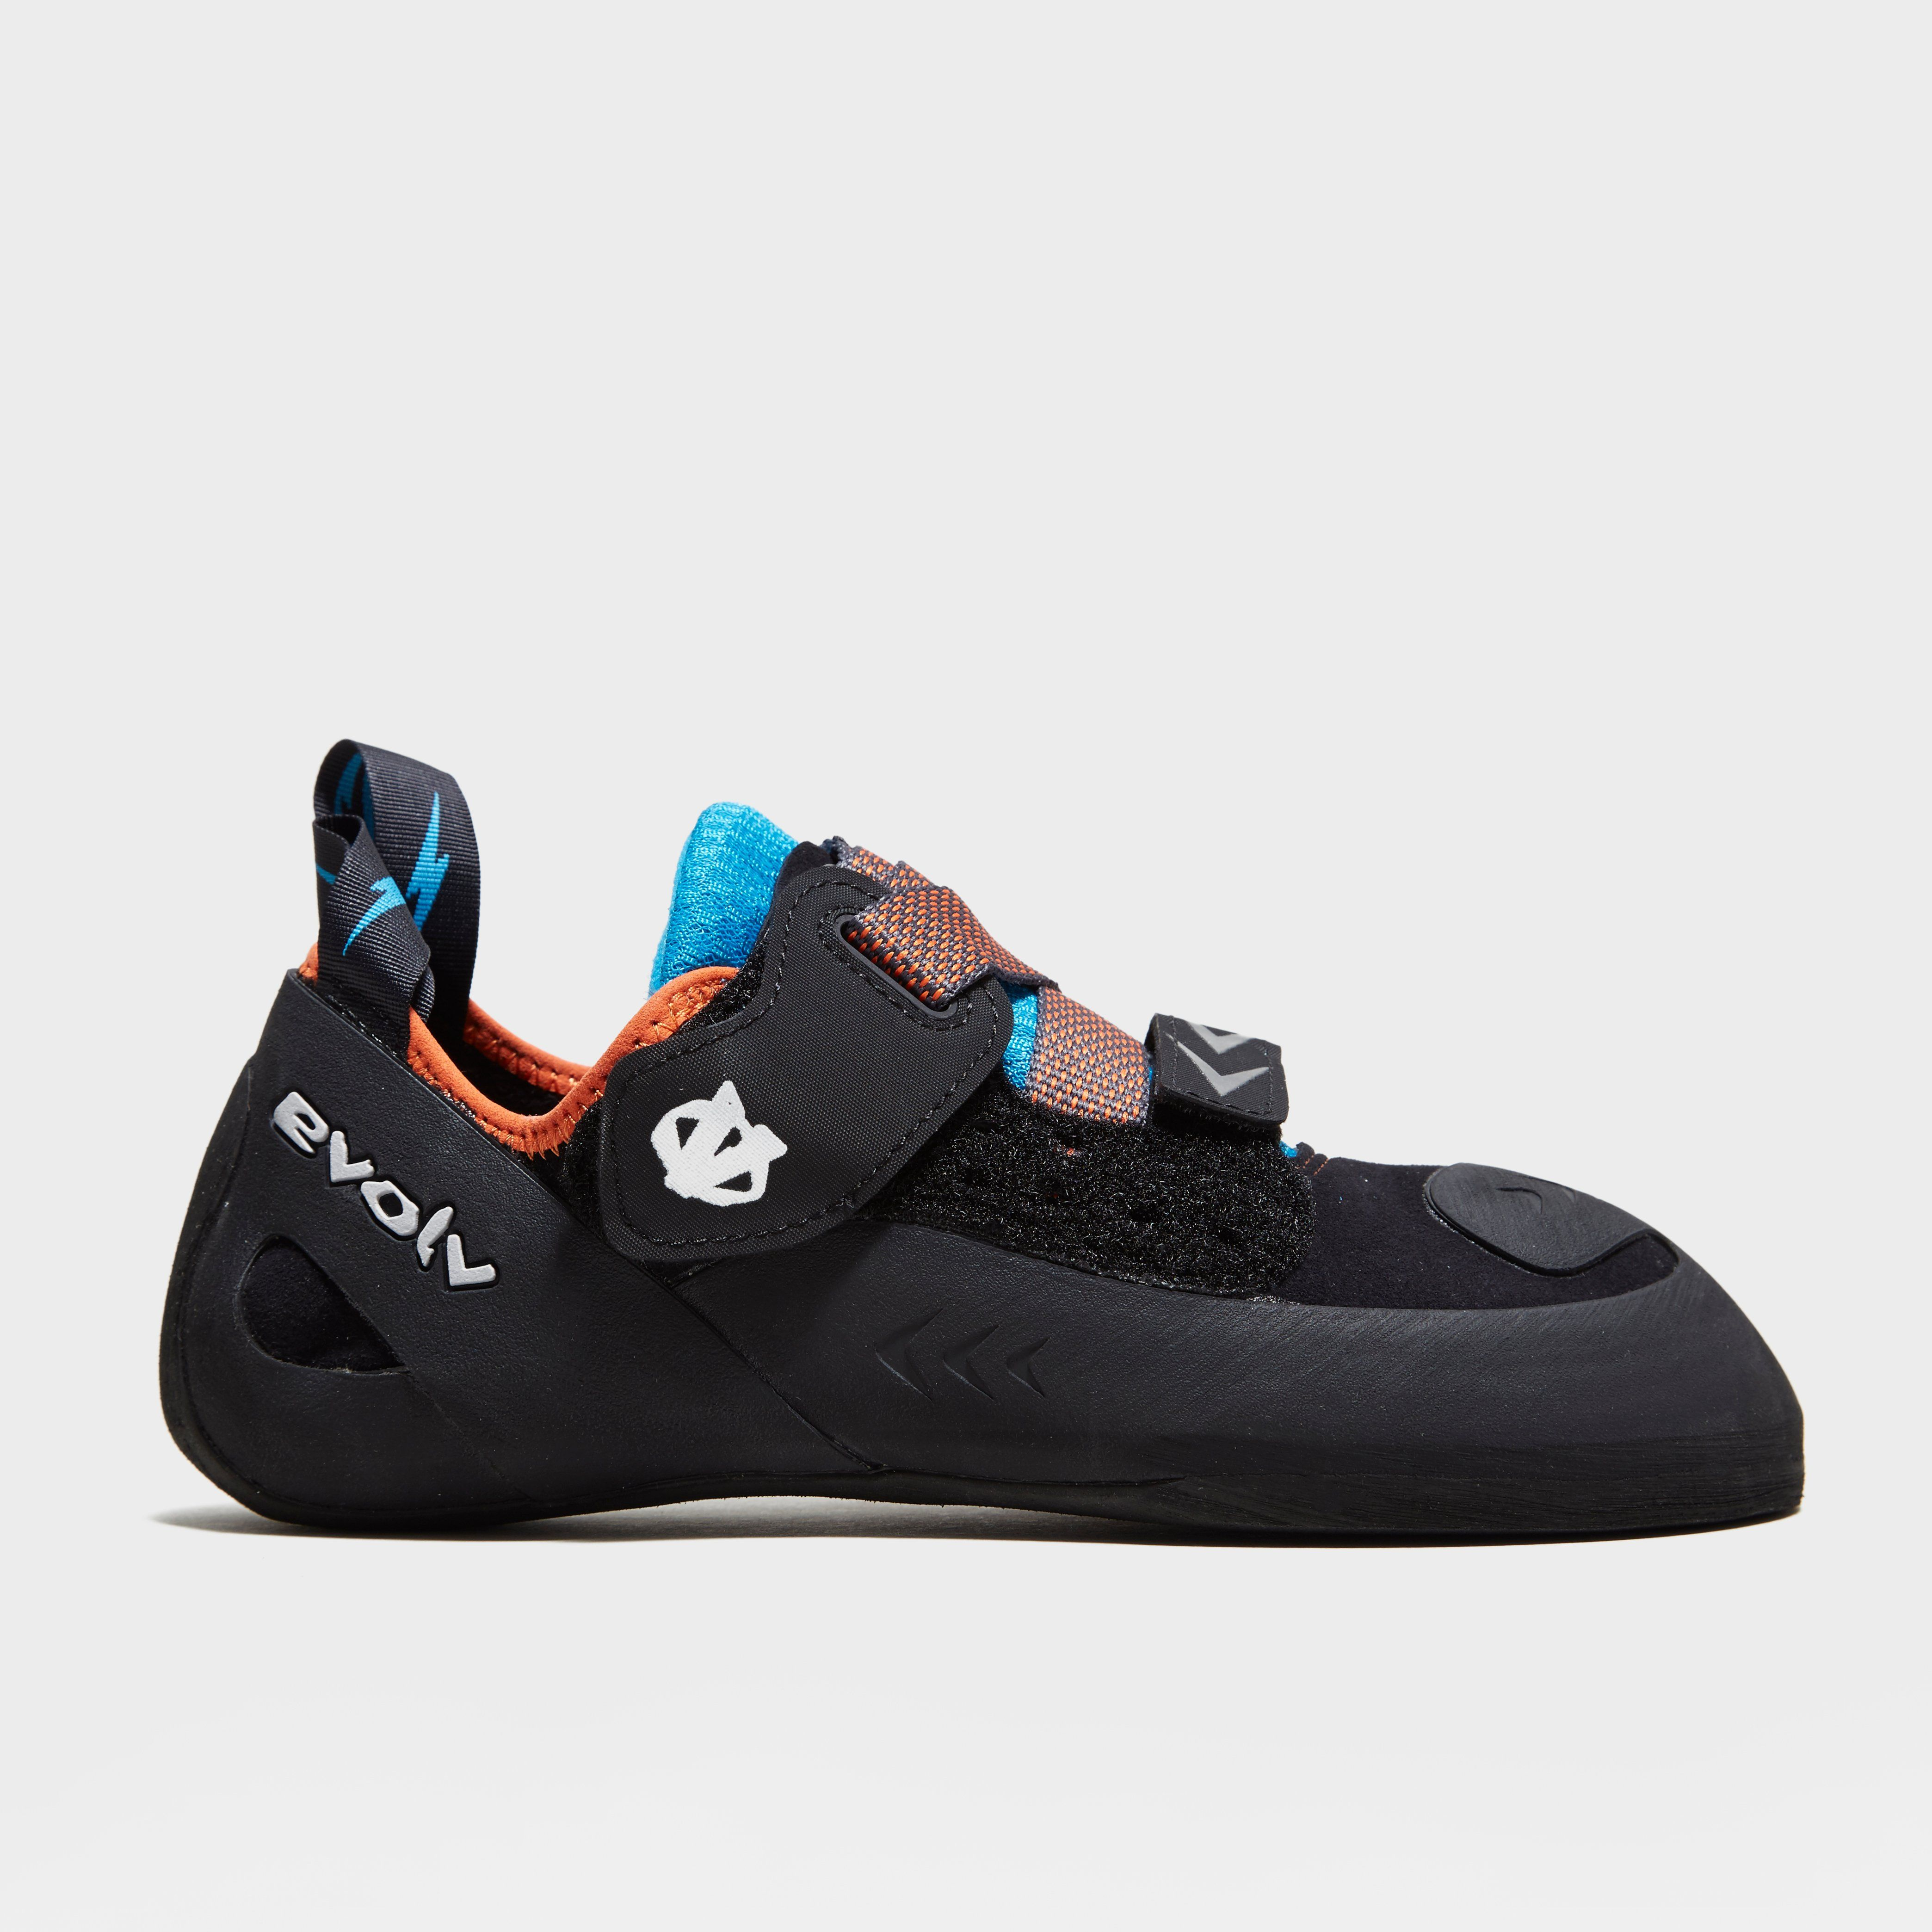 EVOLV Kronos Climbing Shoes